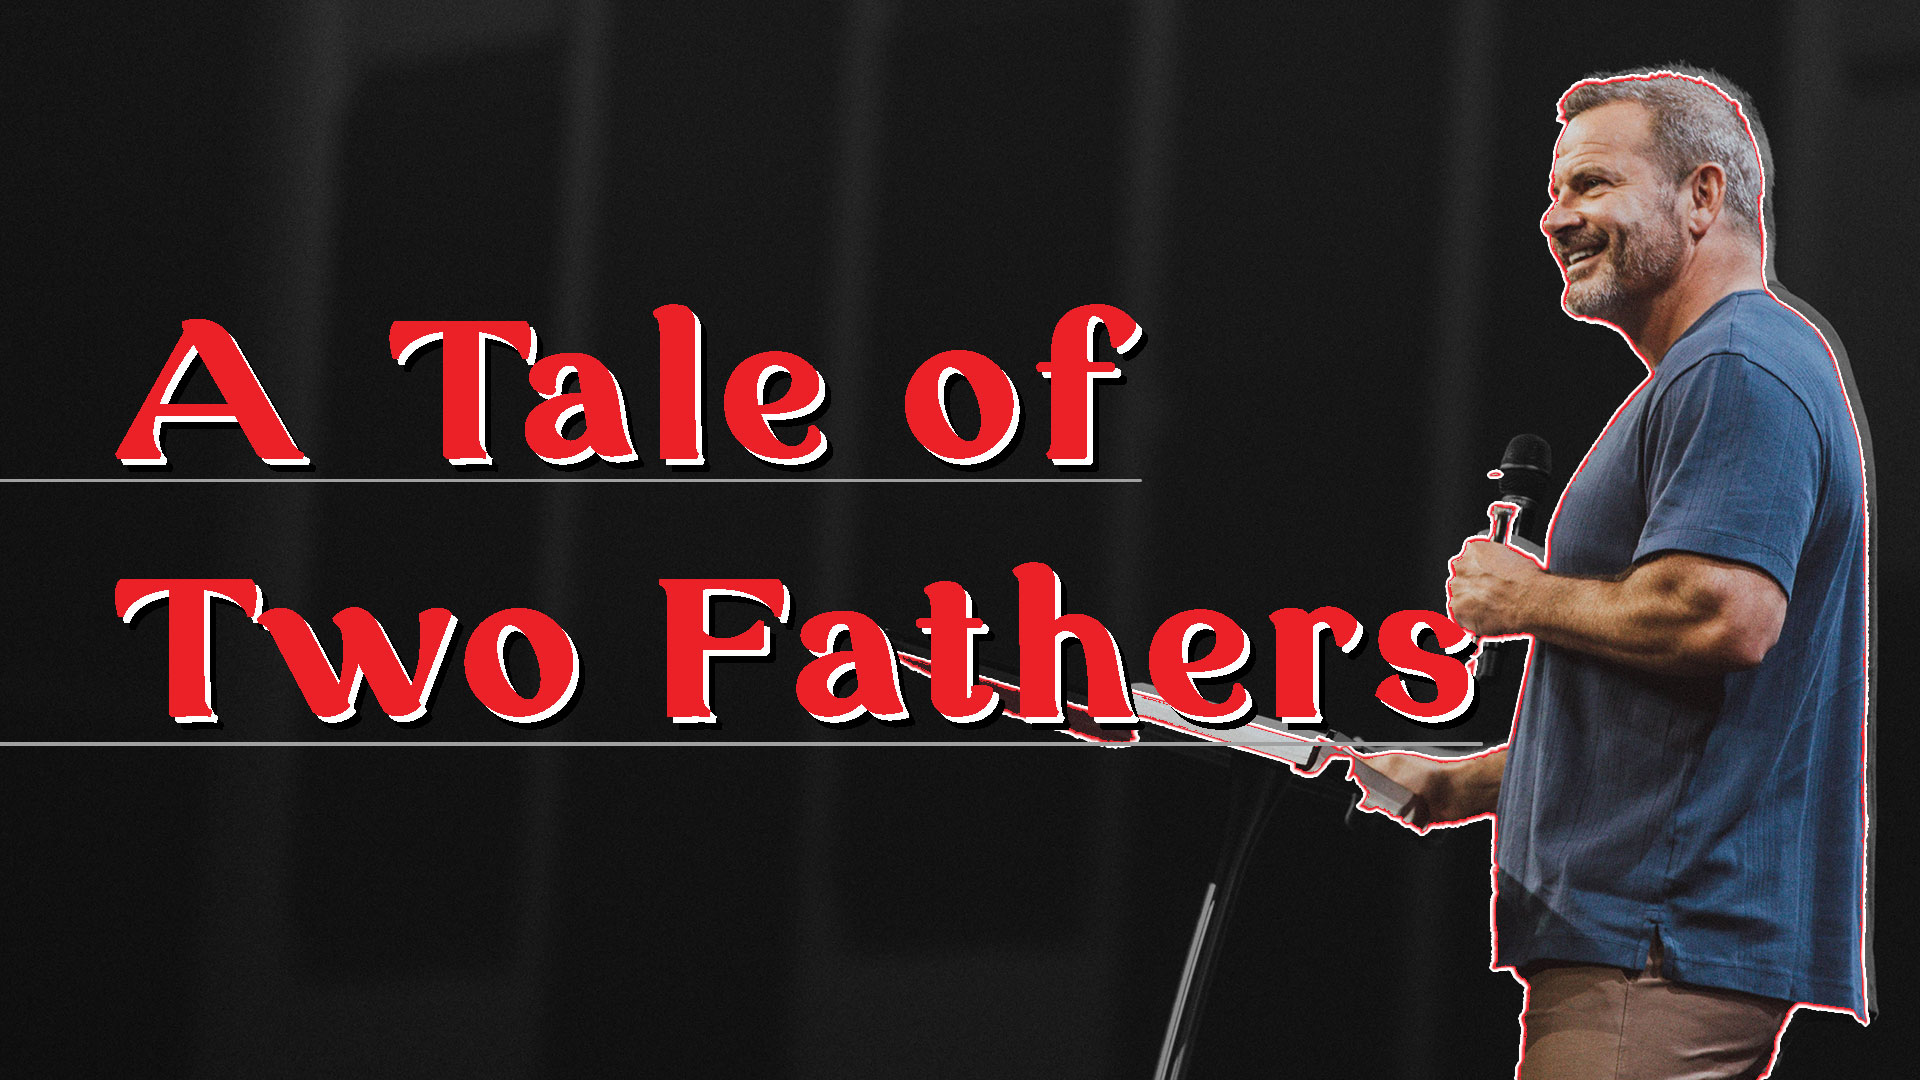 A Tale of Two Fathers